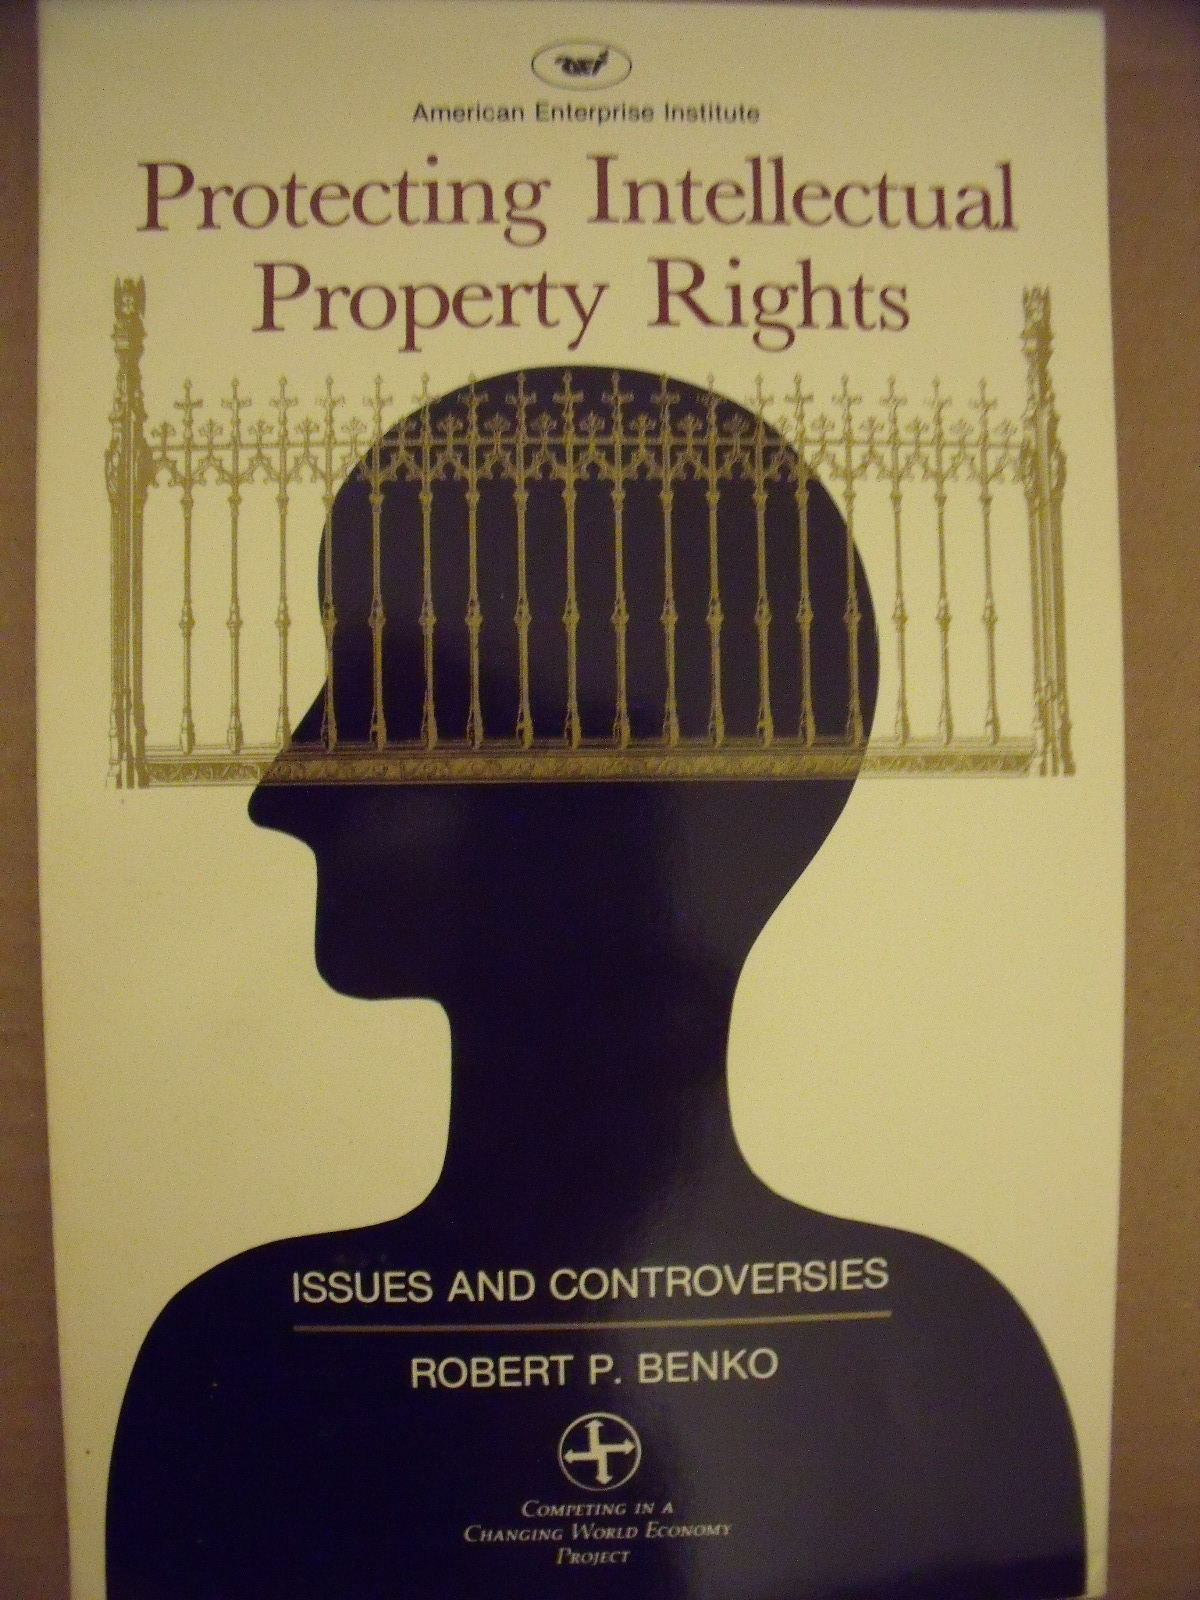 essay on protecting intellectual property rights